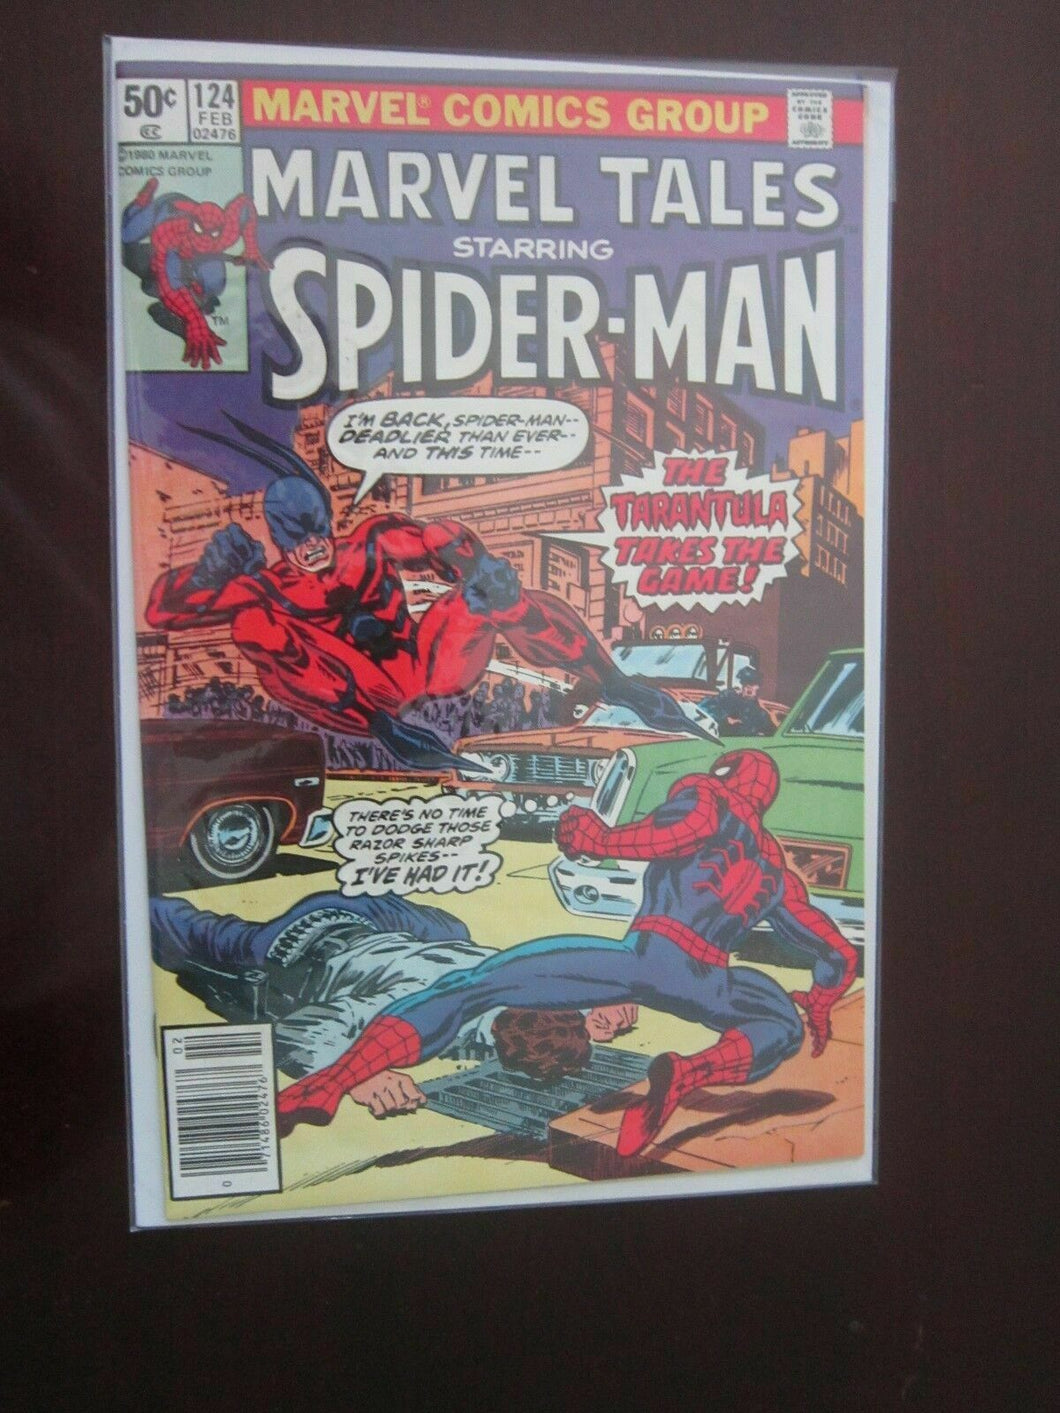 Marvel Tales #124 - SpiderMan - 8.5 - 1981